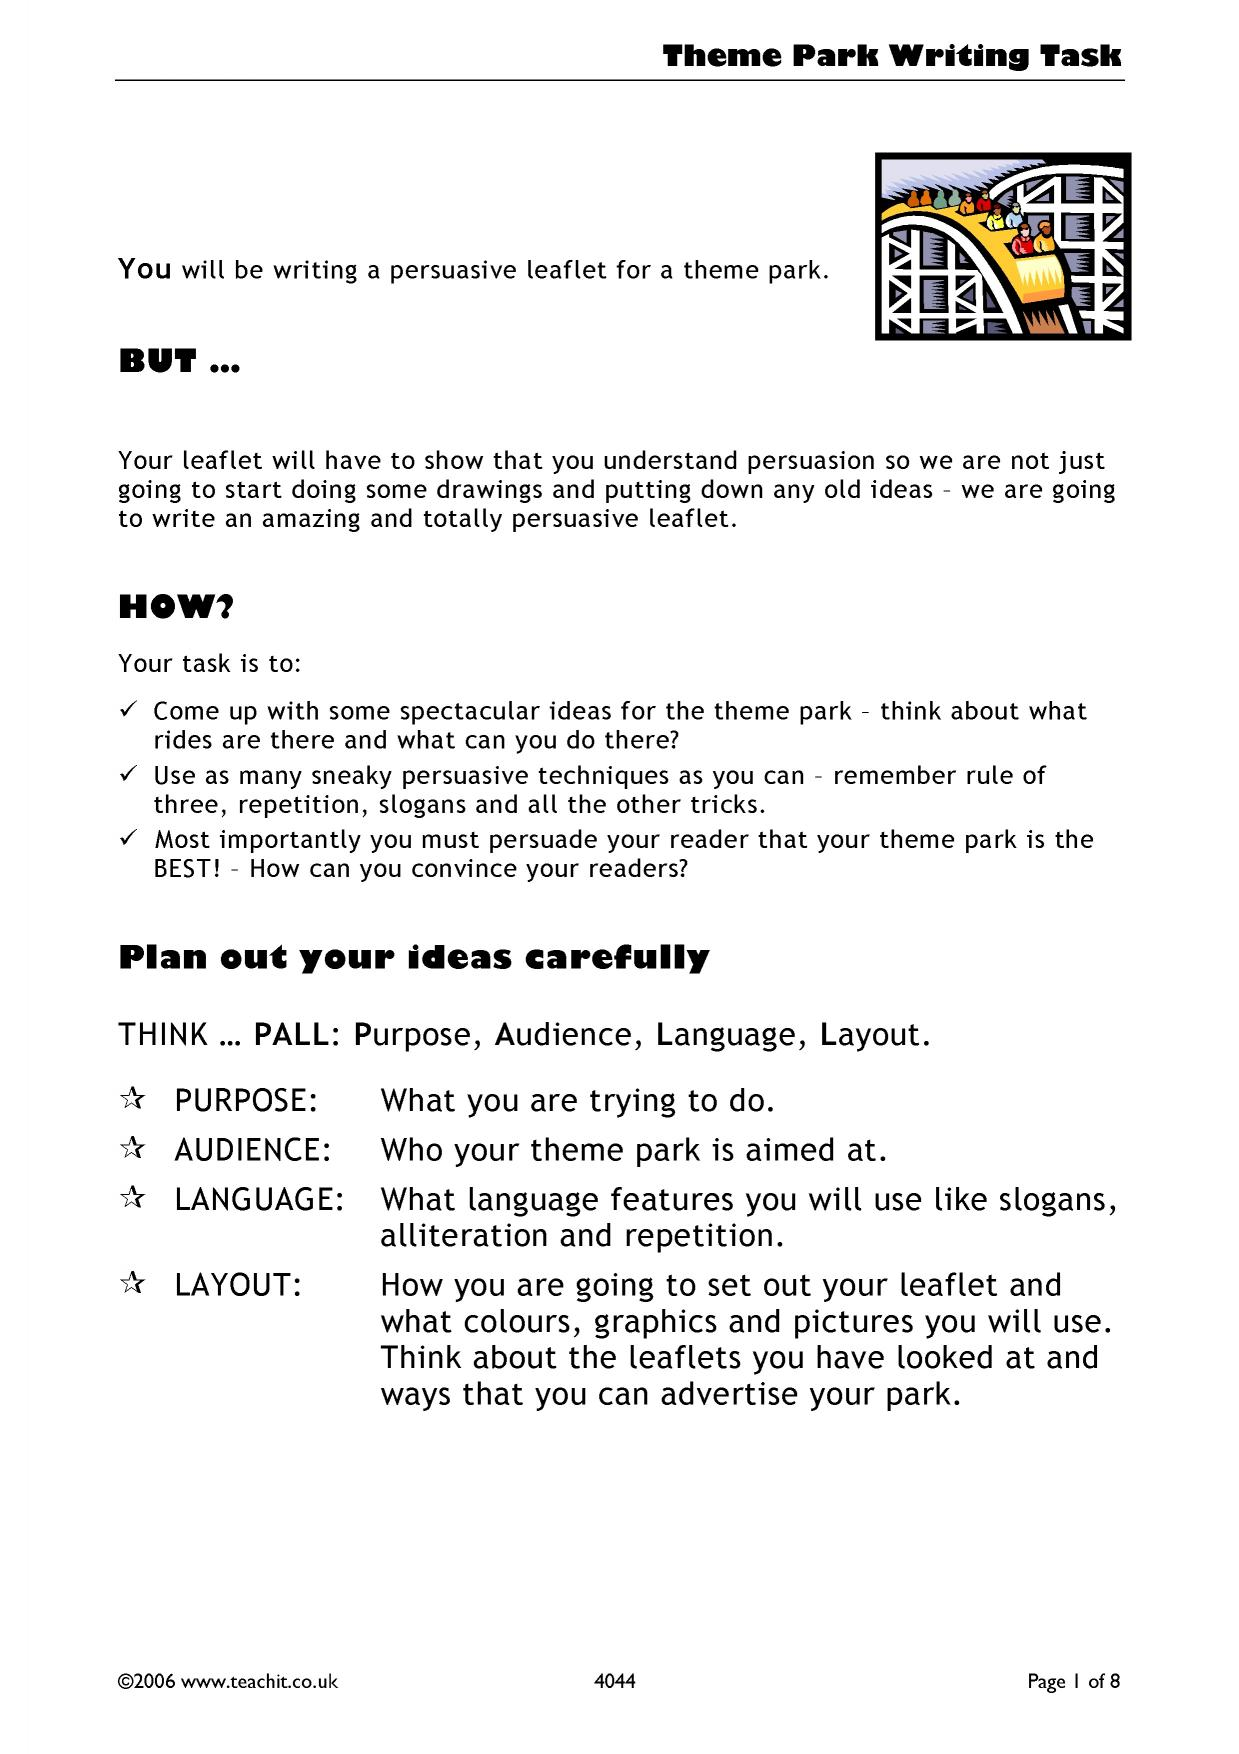 Theme Park Persuasive Writing Leaflet